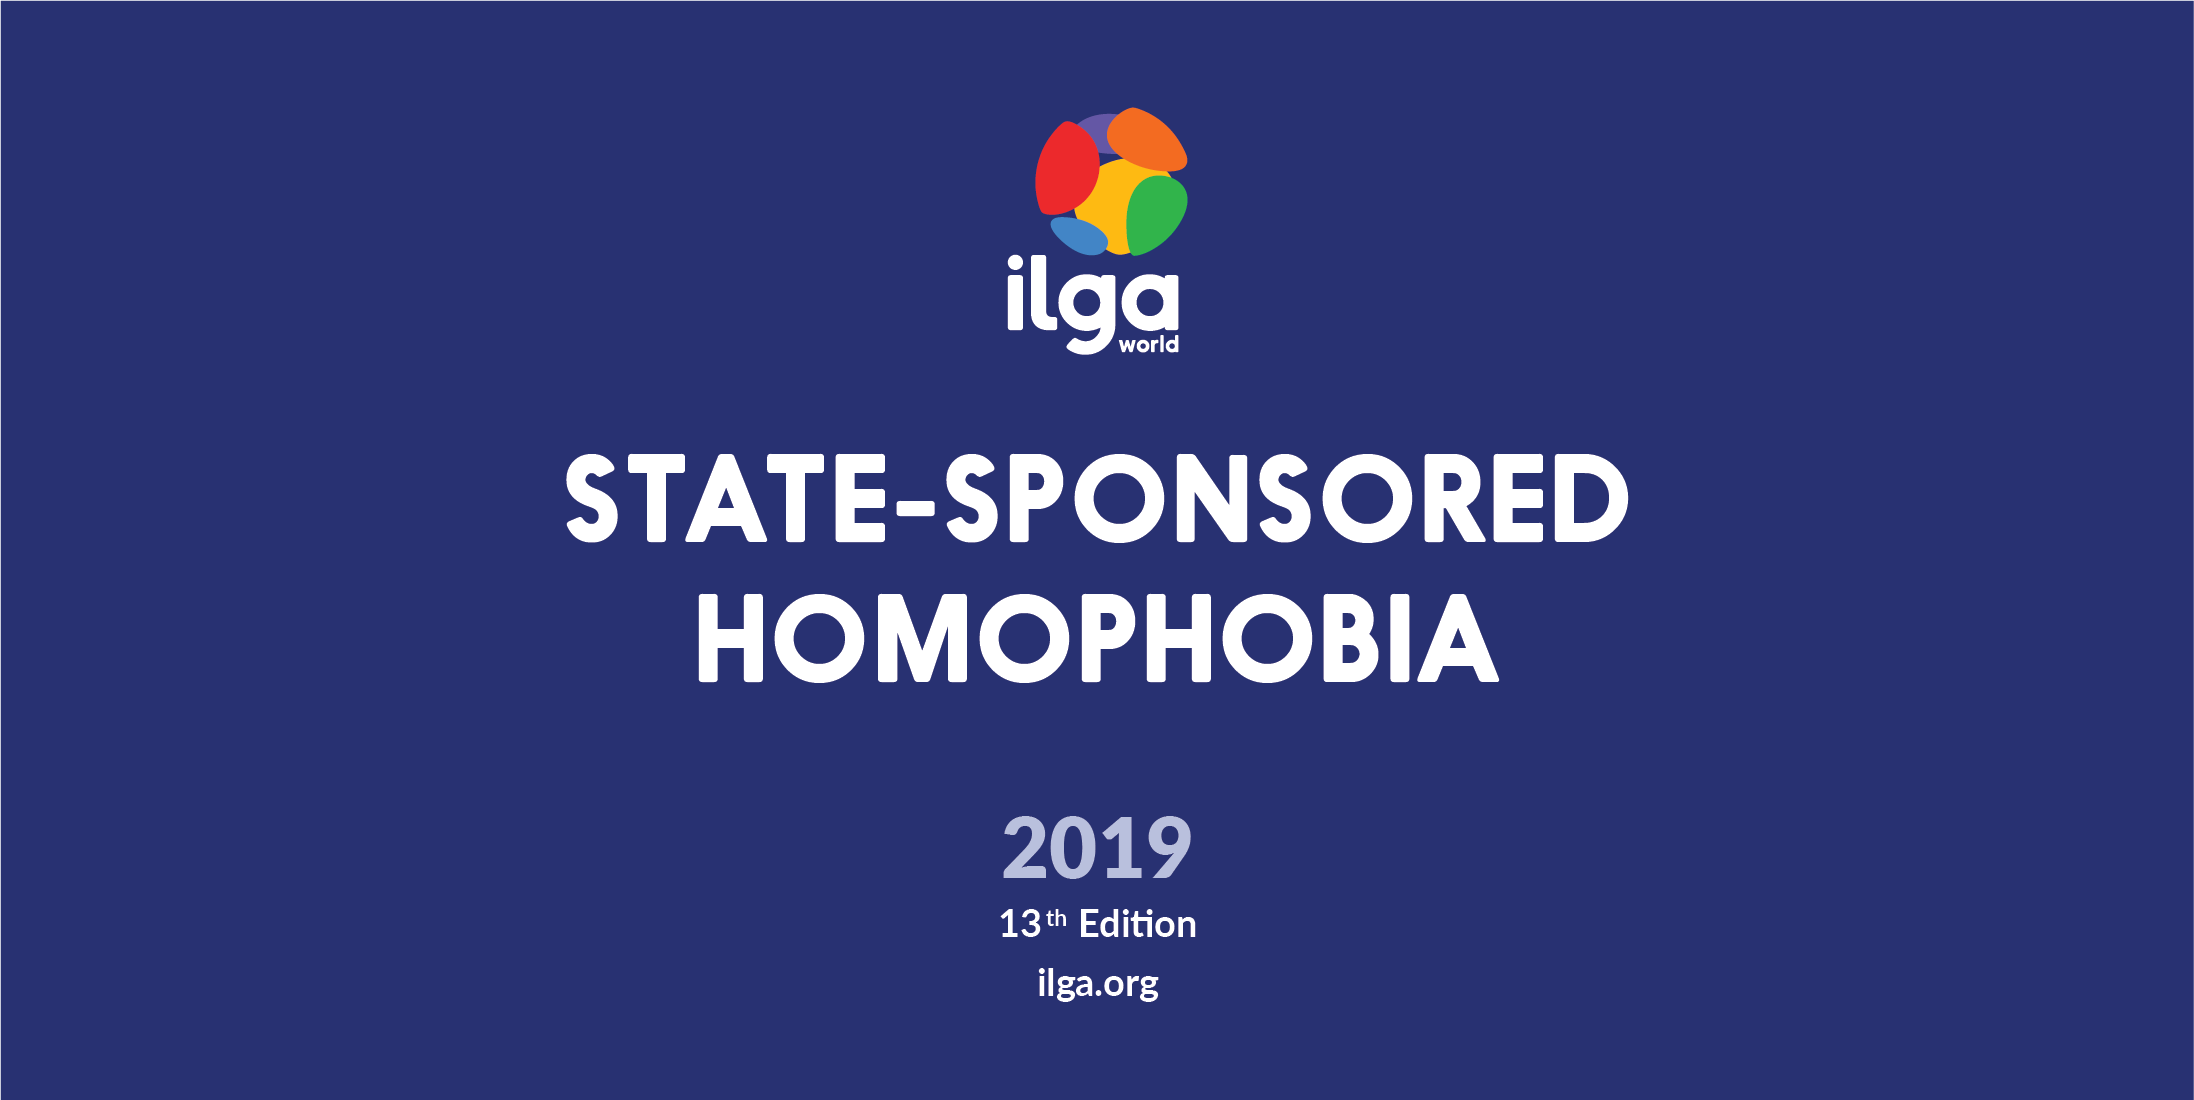 State-Sponsored Homophobia report: latest edition